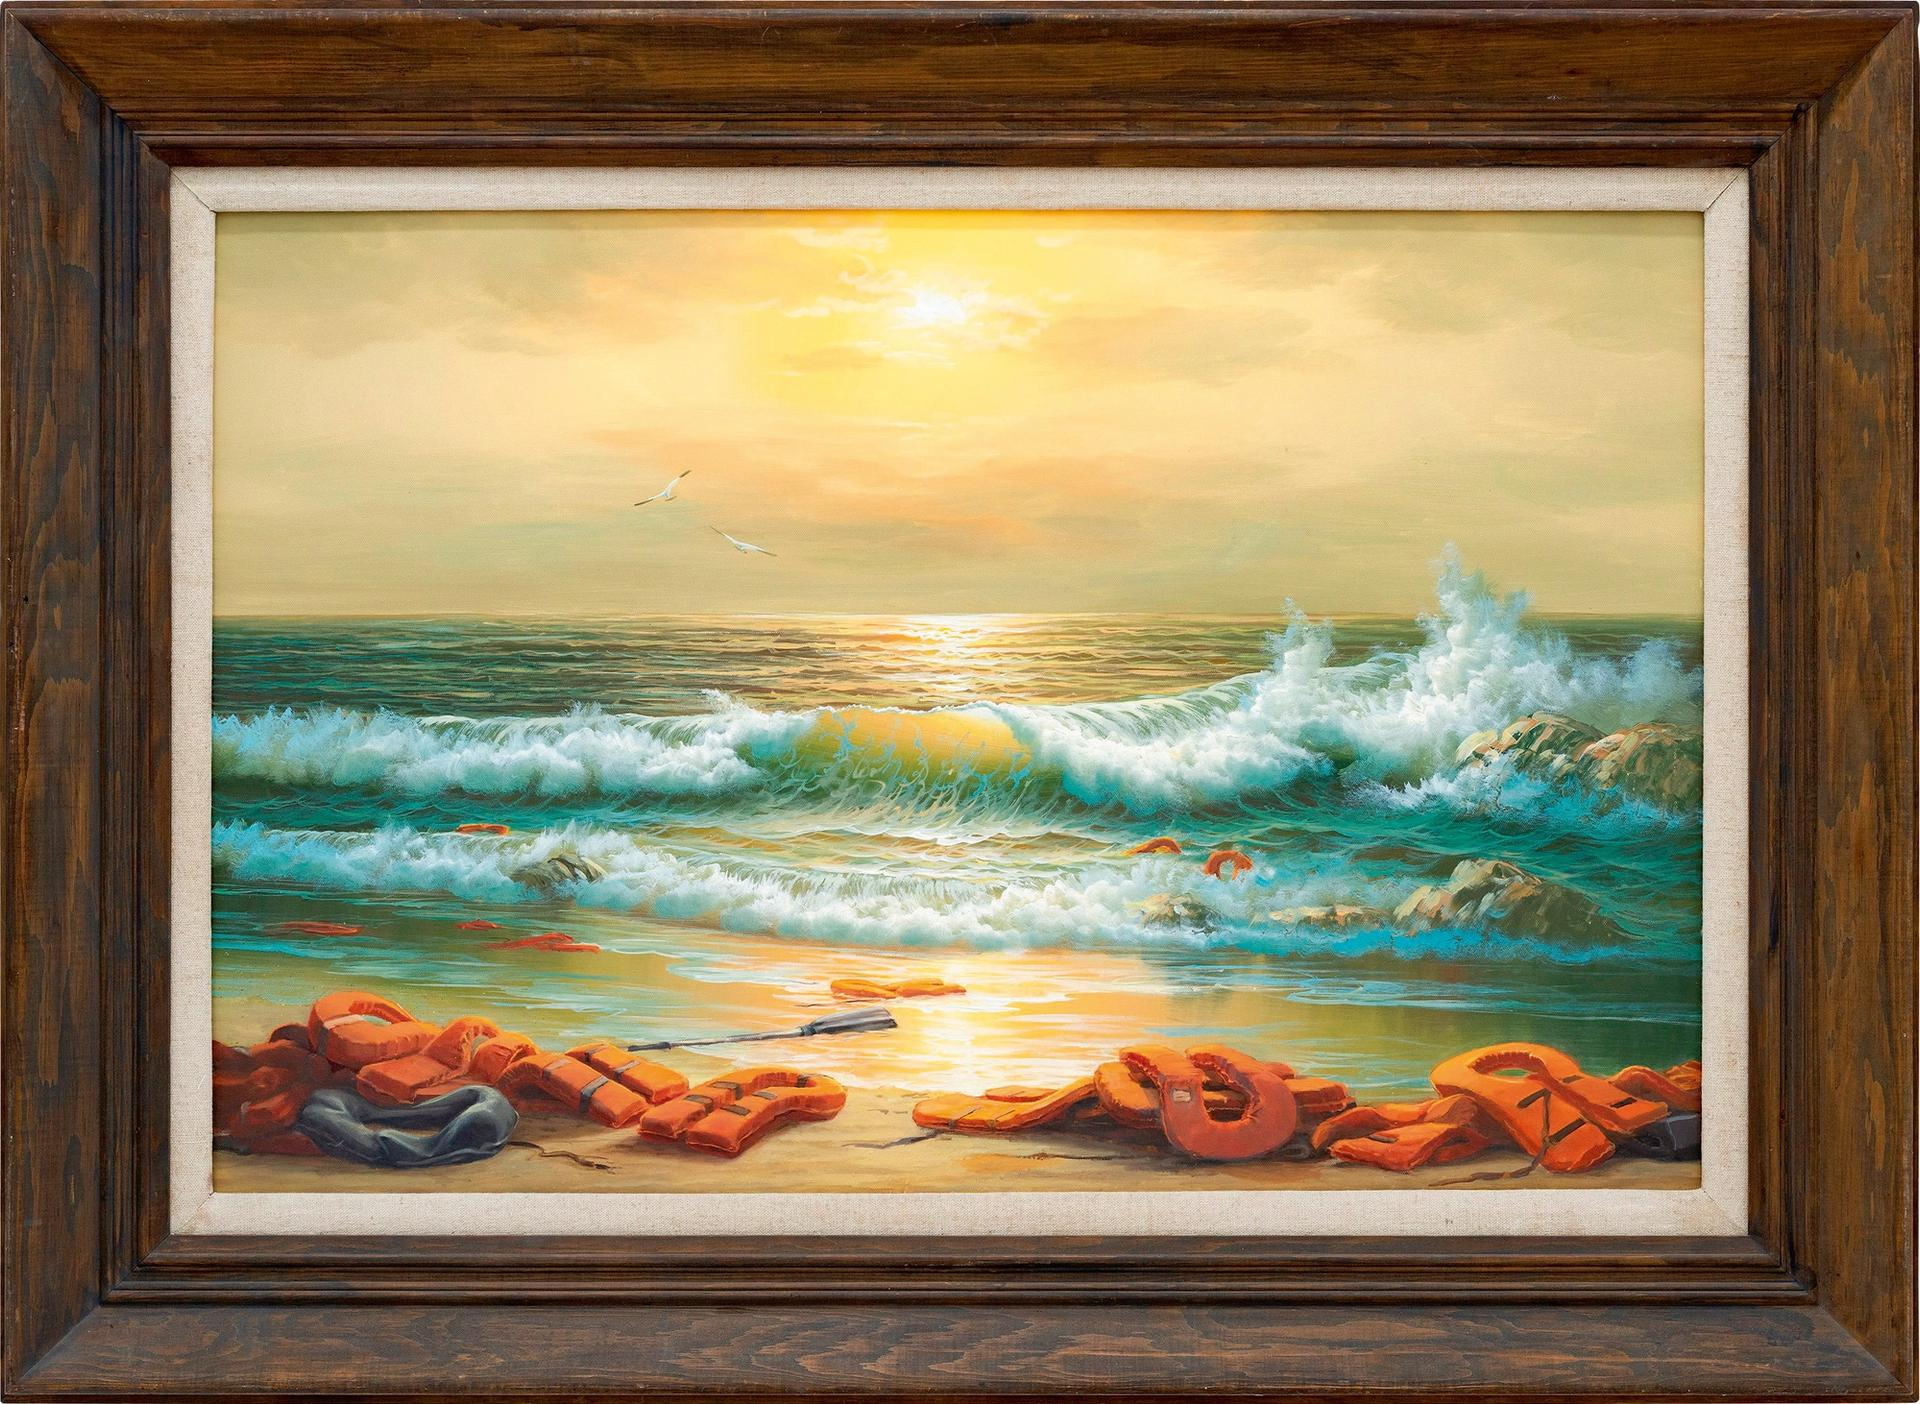 Banksy's Mediterranean sea view 2017, one painting in the triptych that is estimated to sell for £800,000-£1.2m Courtesy of Sotheby's